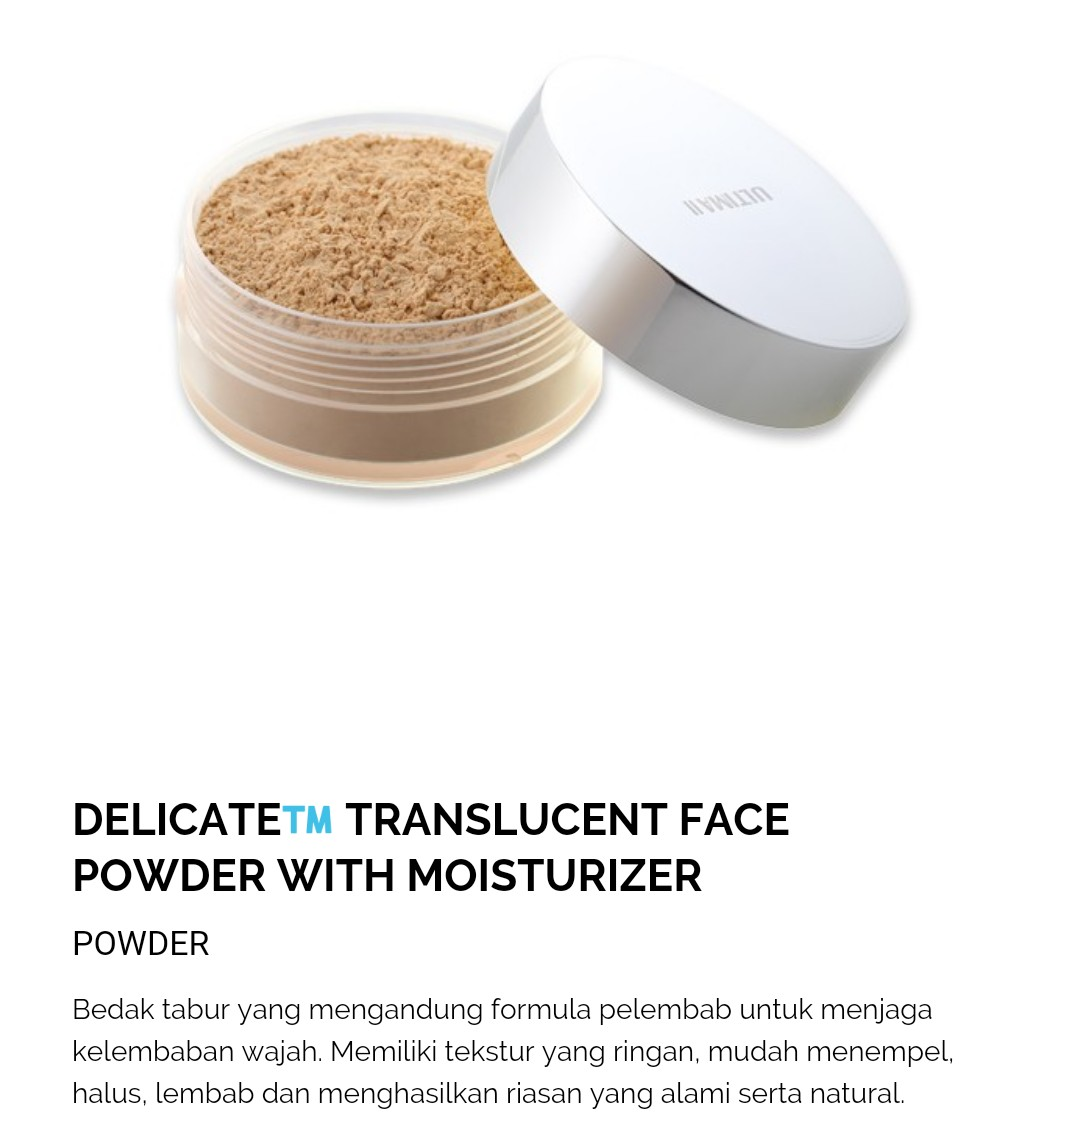 Web Versi Mobile Ultima Ii Bedak Tabur Ukuran Besar Positioning Dynamic Duo Infused With Soluble Collagen Powder Which Is The Perfect Pair To Delicate Crme Make Up Disguise Flaws And Hide Fine Lines